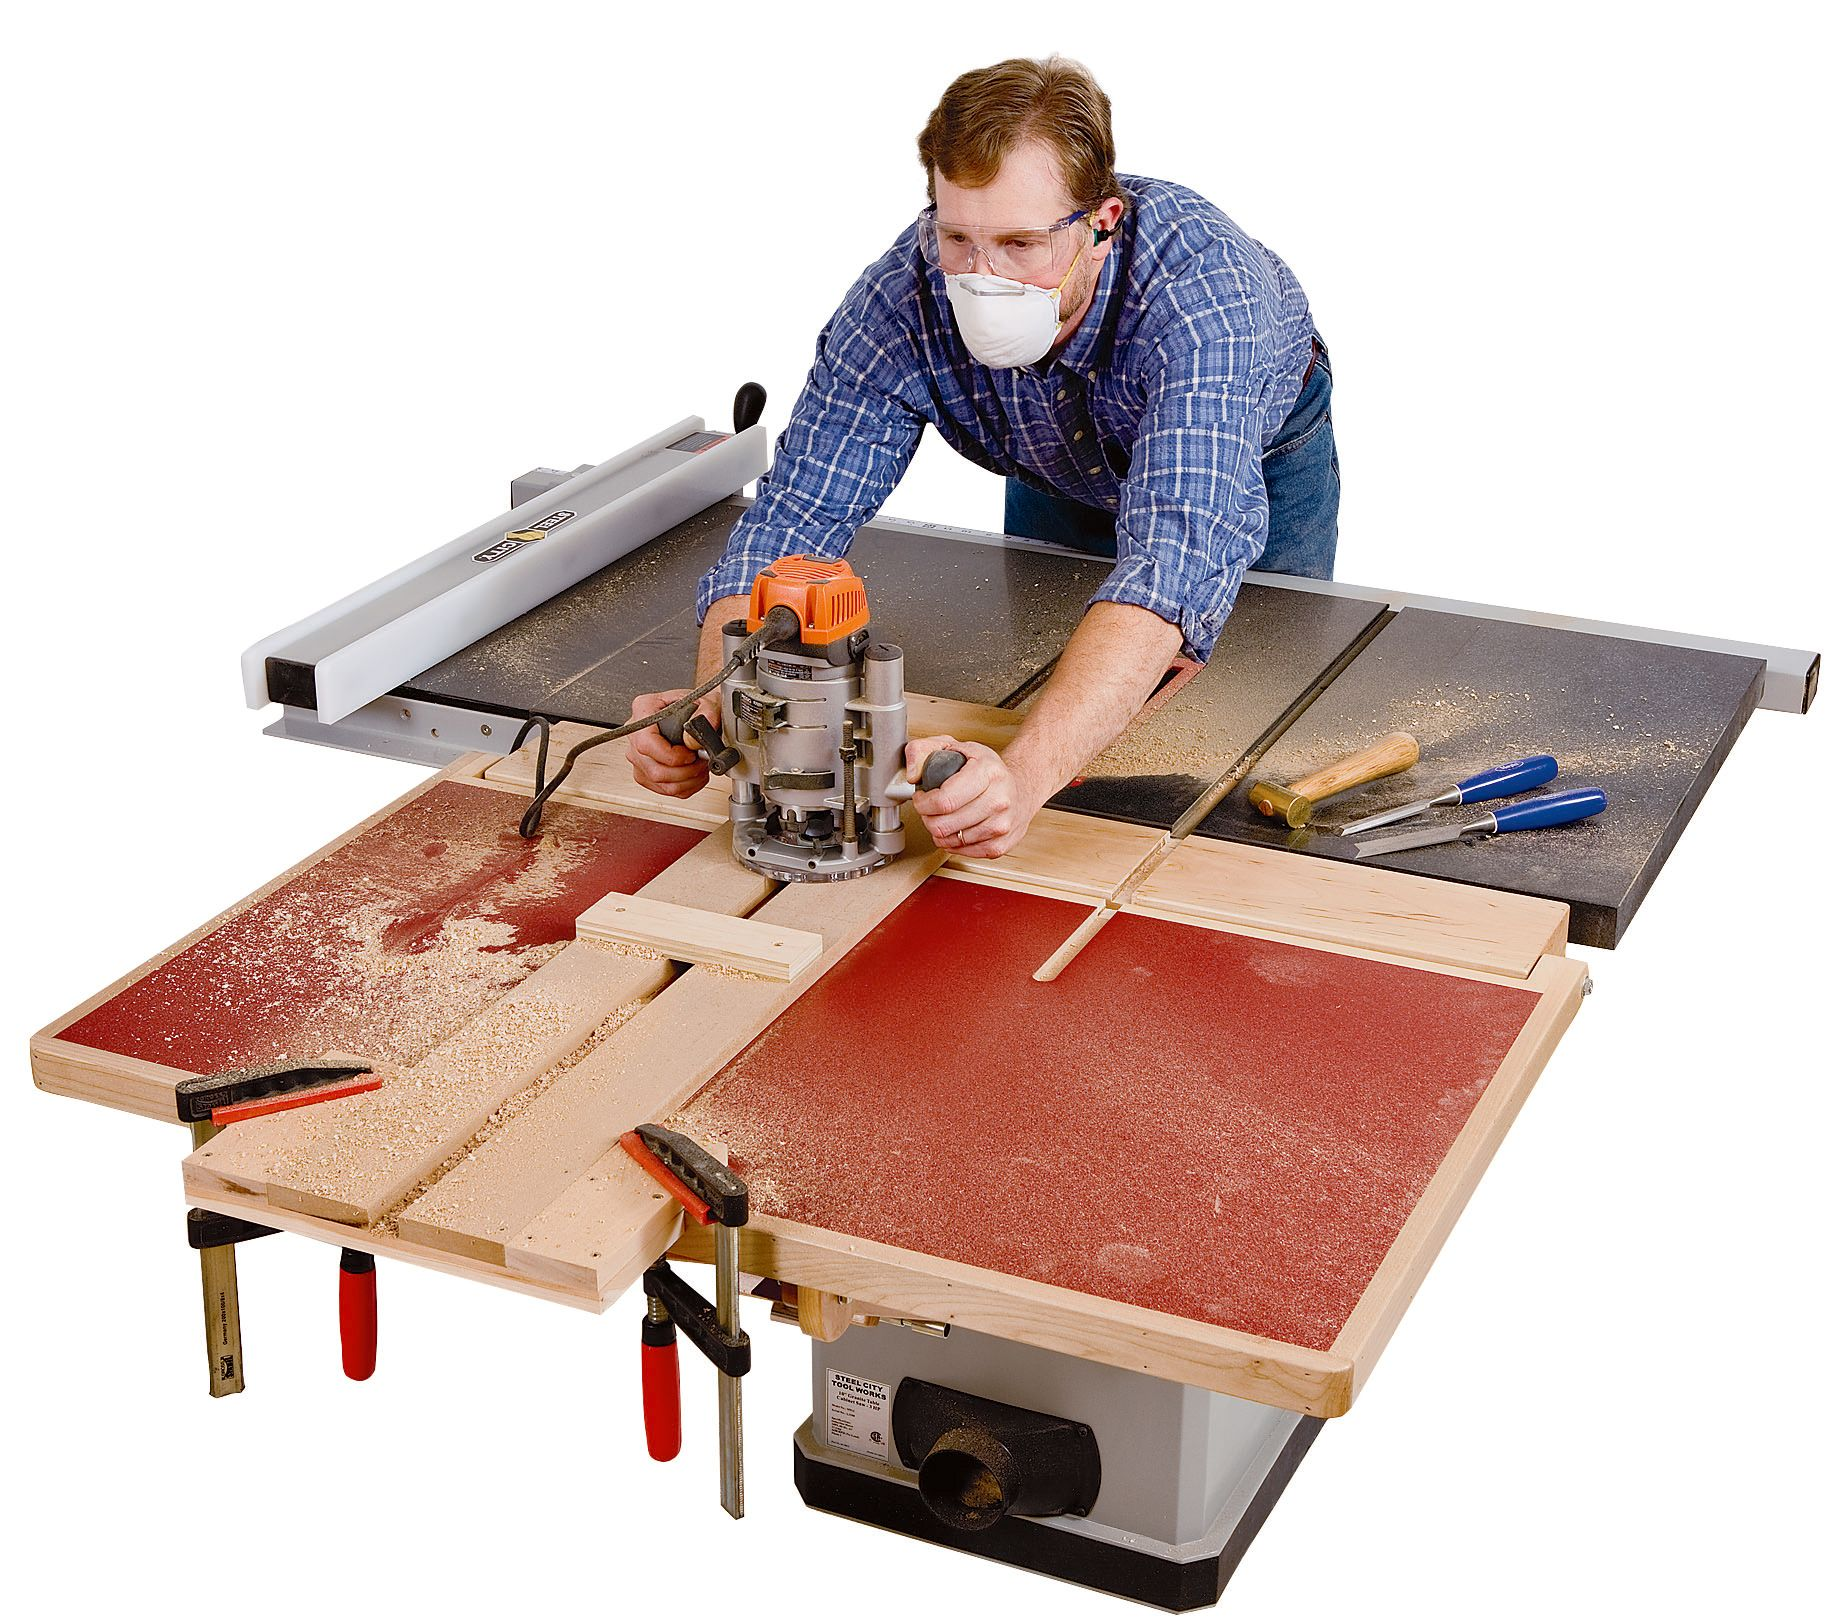 Build a folding outfeed table to mount on your table saw stand build a folding outfeed table to mount on your table saw stand greentooth Choice Image